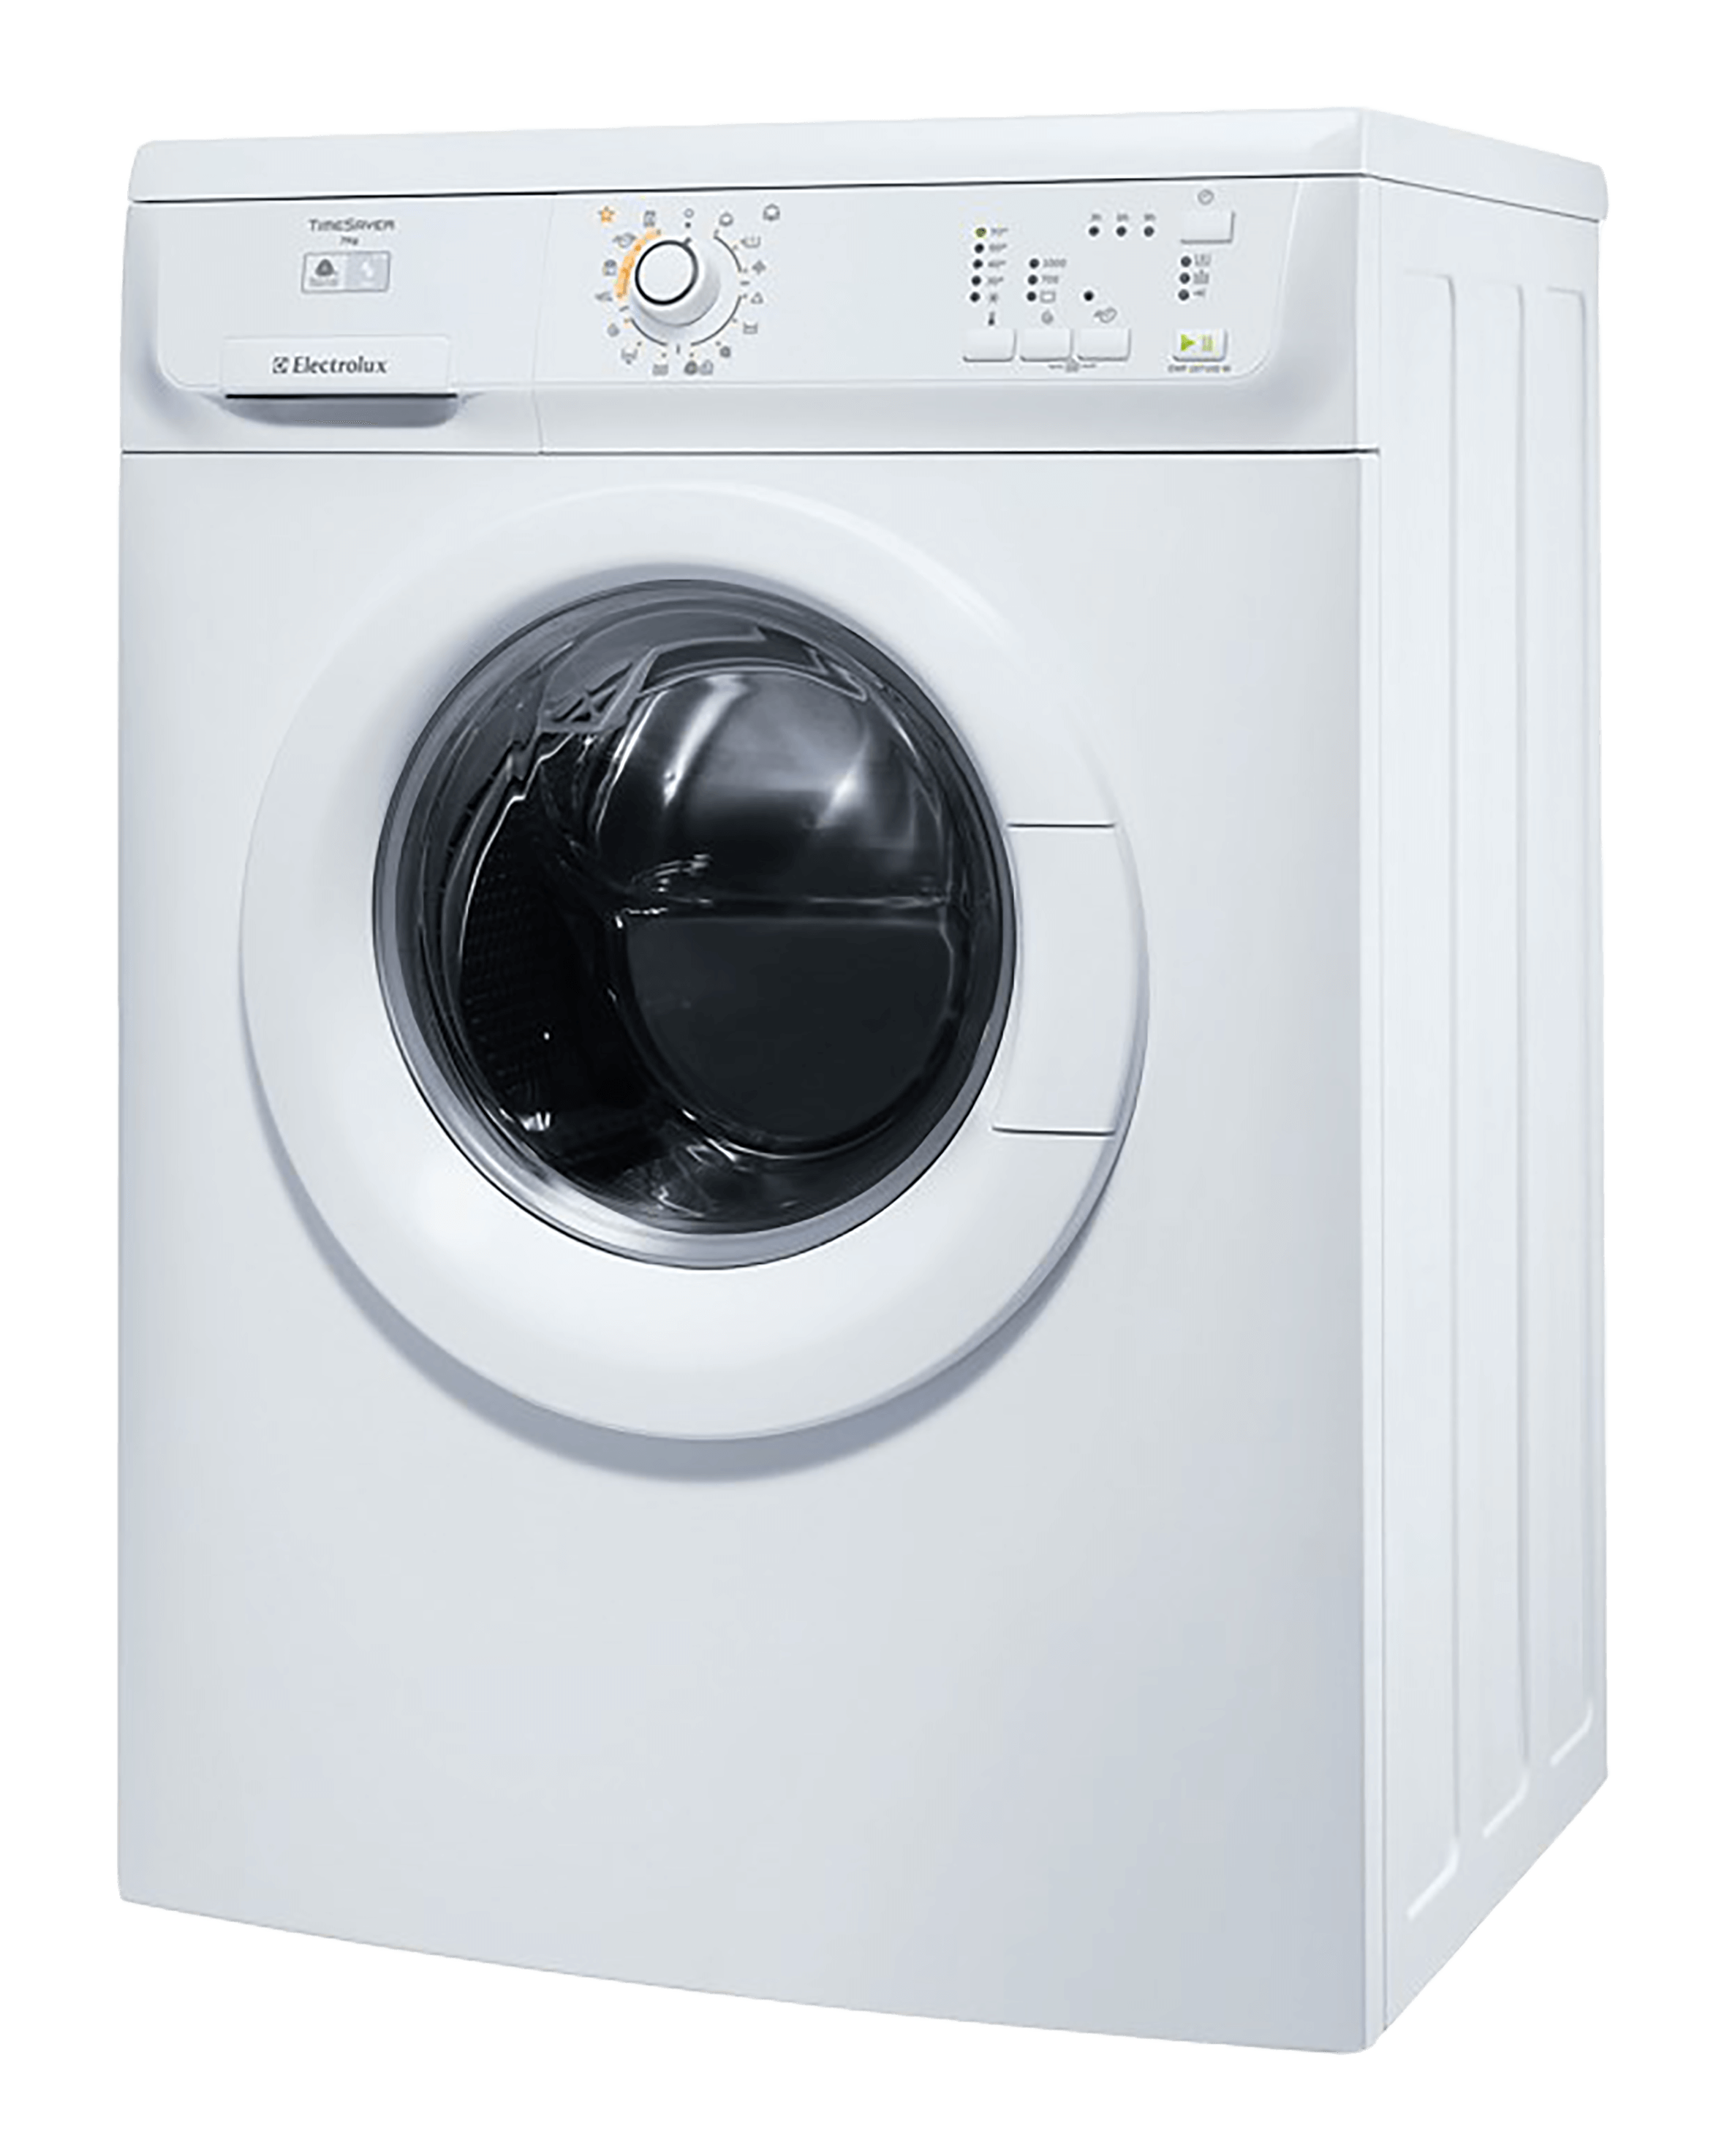 dometic front loader washing machine manual